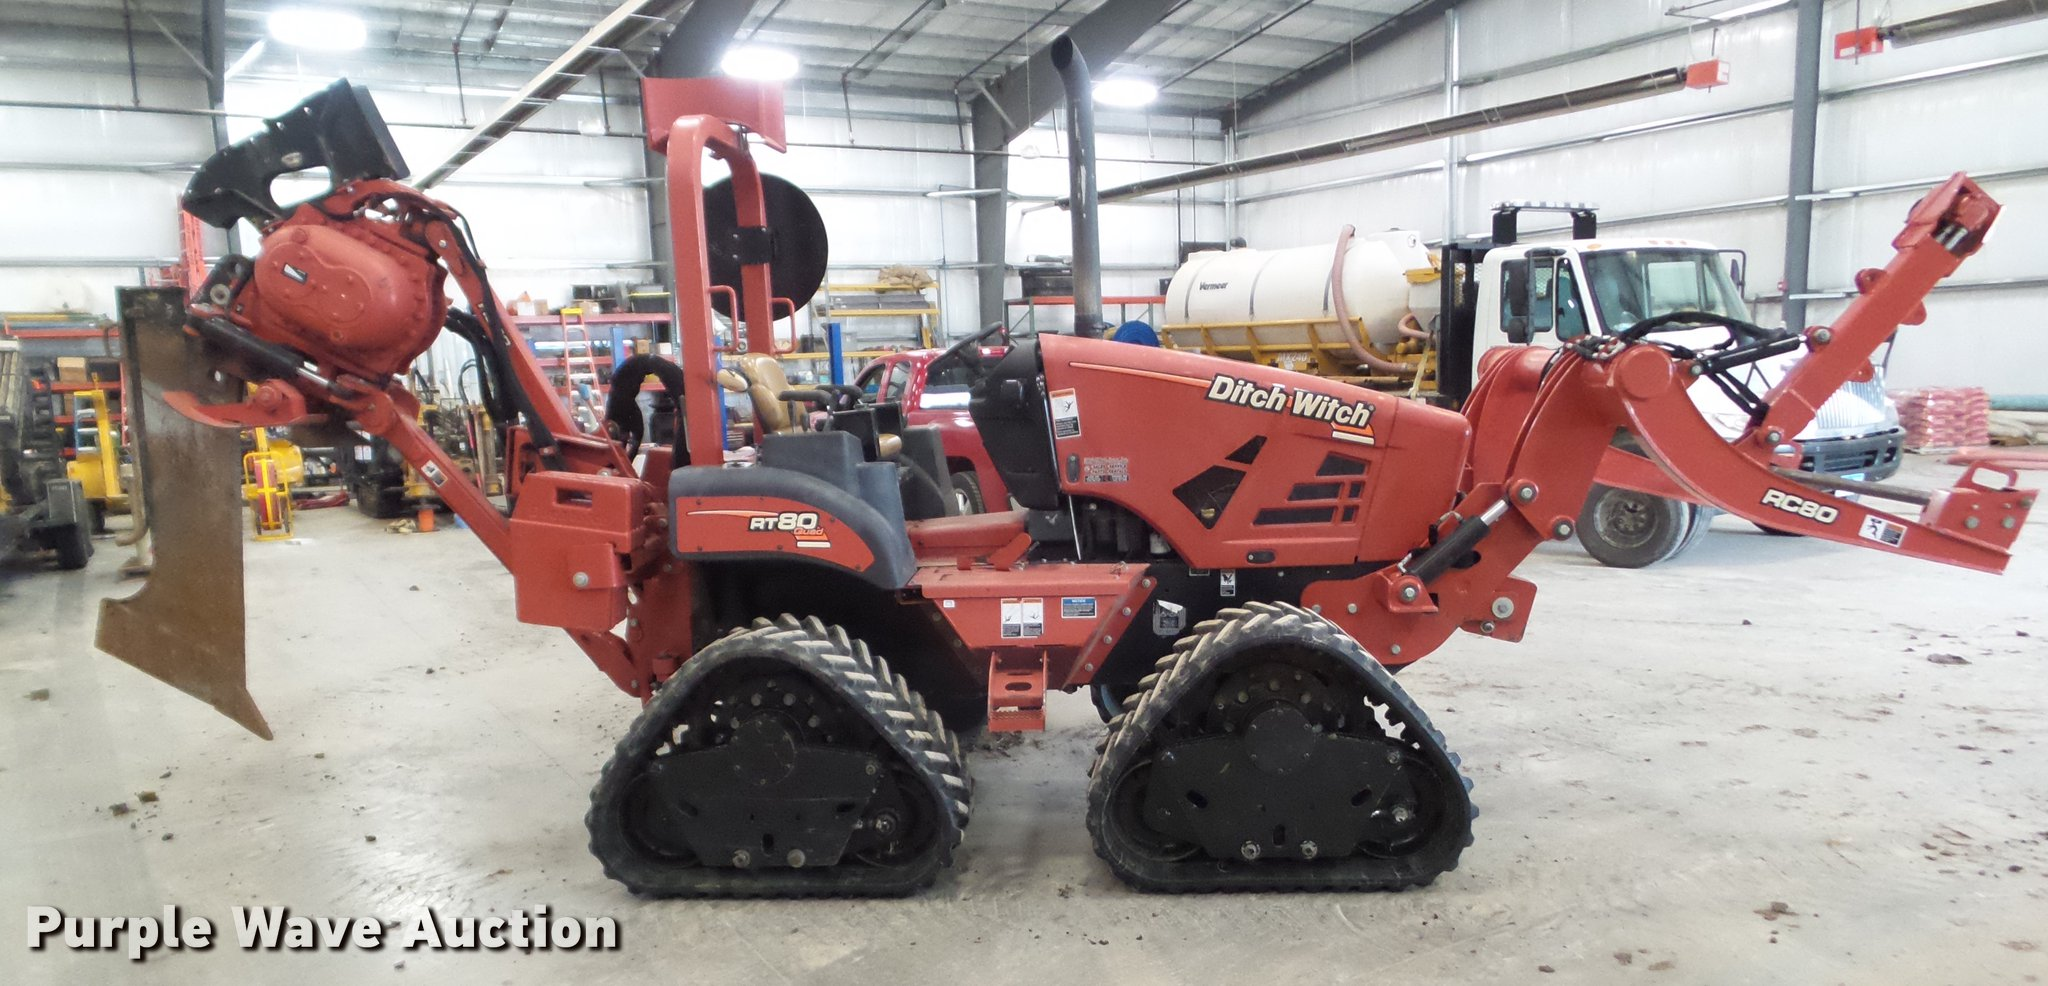 2012 Ditch Witch RT80 Quad cable plow | Item DZ9451 | SOLD!